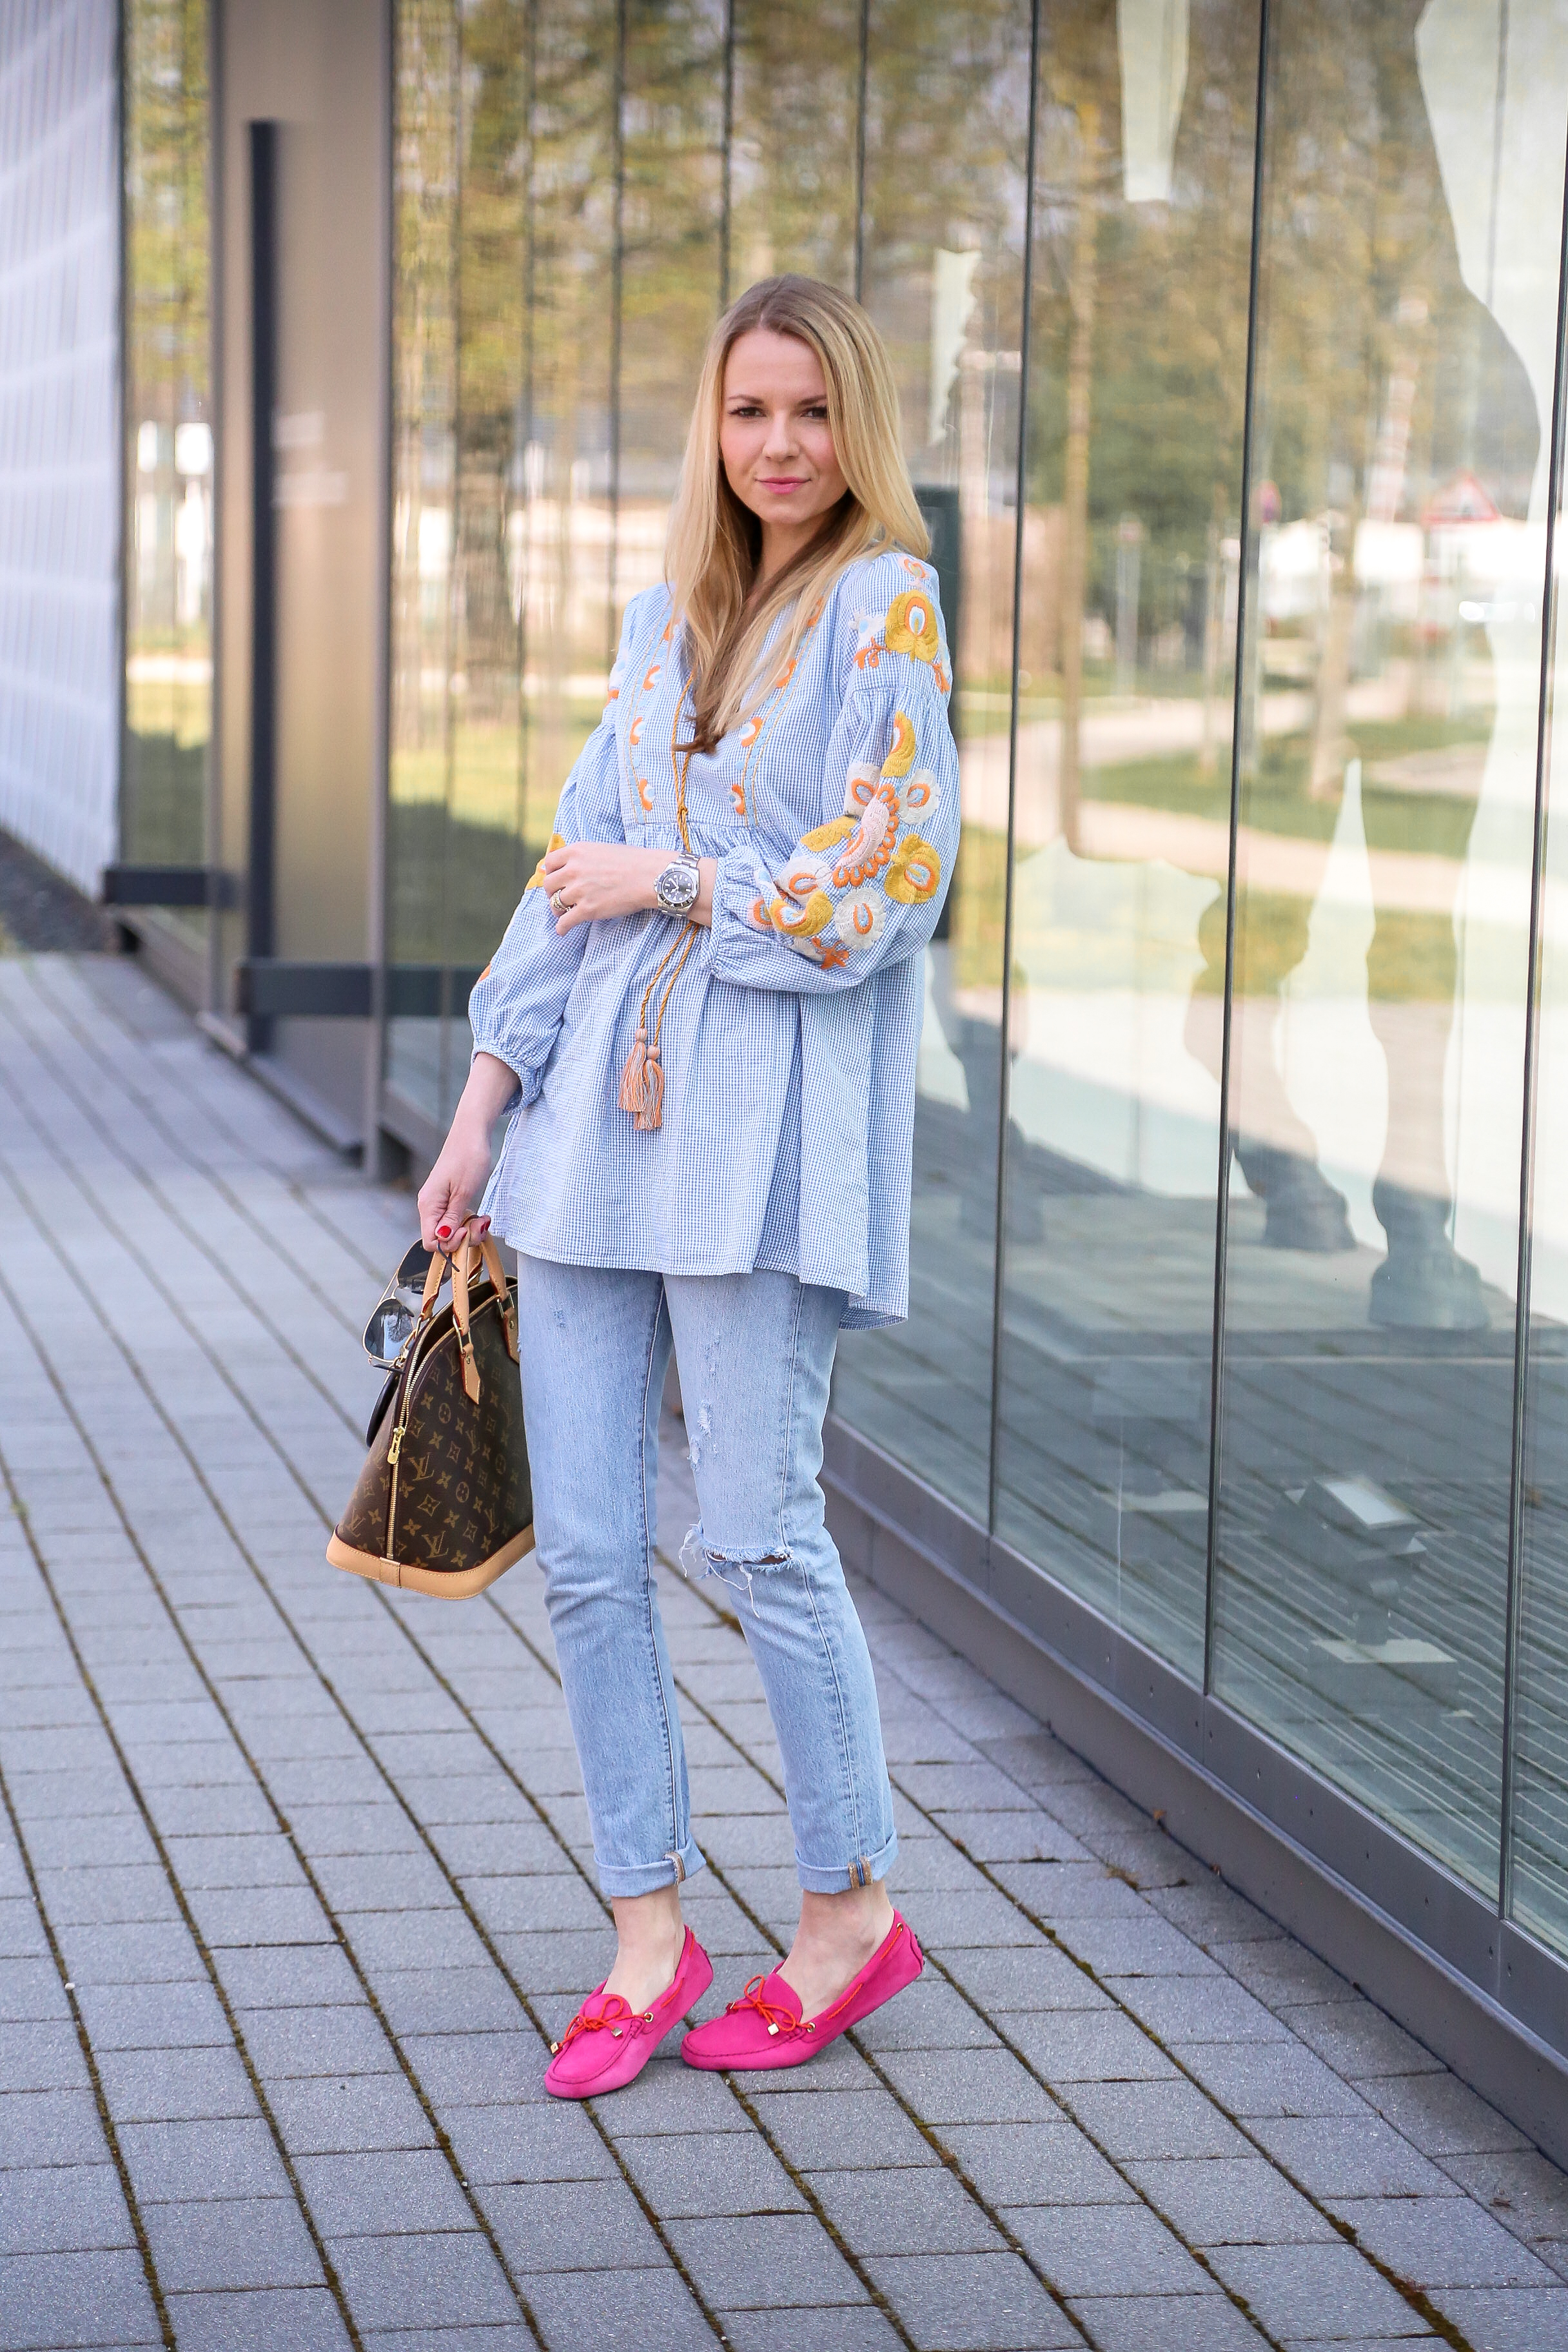 Outfit mit bestickter Tunika und Tod´s Loafer Levis Jeans Denim Jennifer PepperAndGold Fashion Outfit Mode Zara LouisVuitton LV LVOE Porsche Design